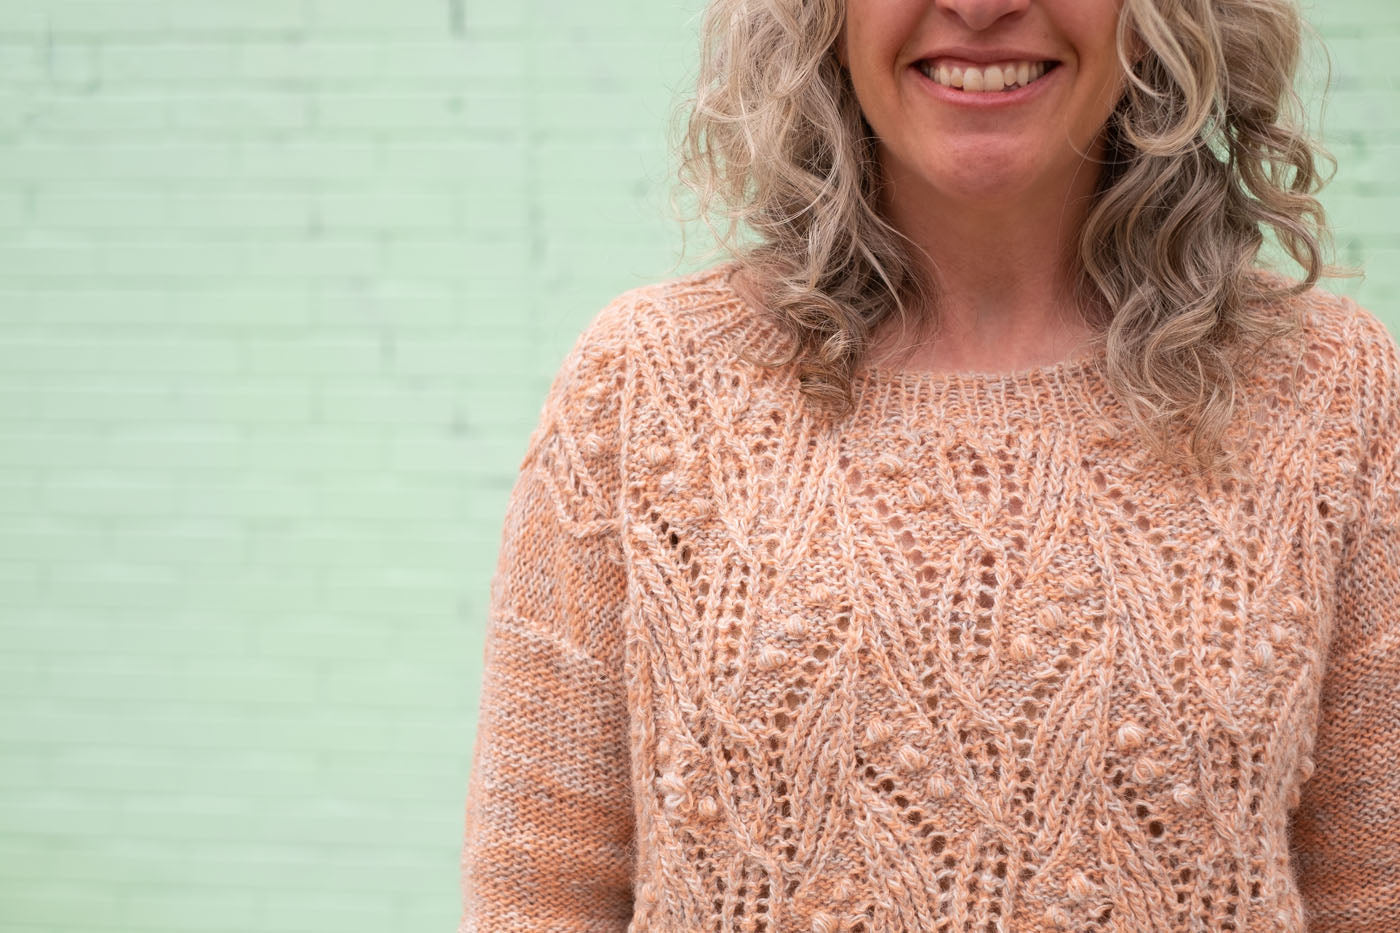 A detail shot of the texture on Jaime's sweater, showing the lace, bobble and cable texture.